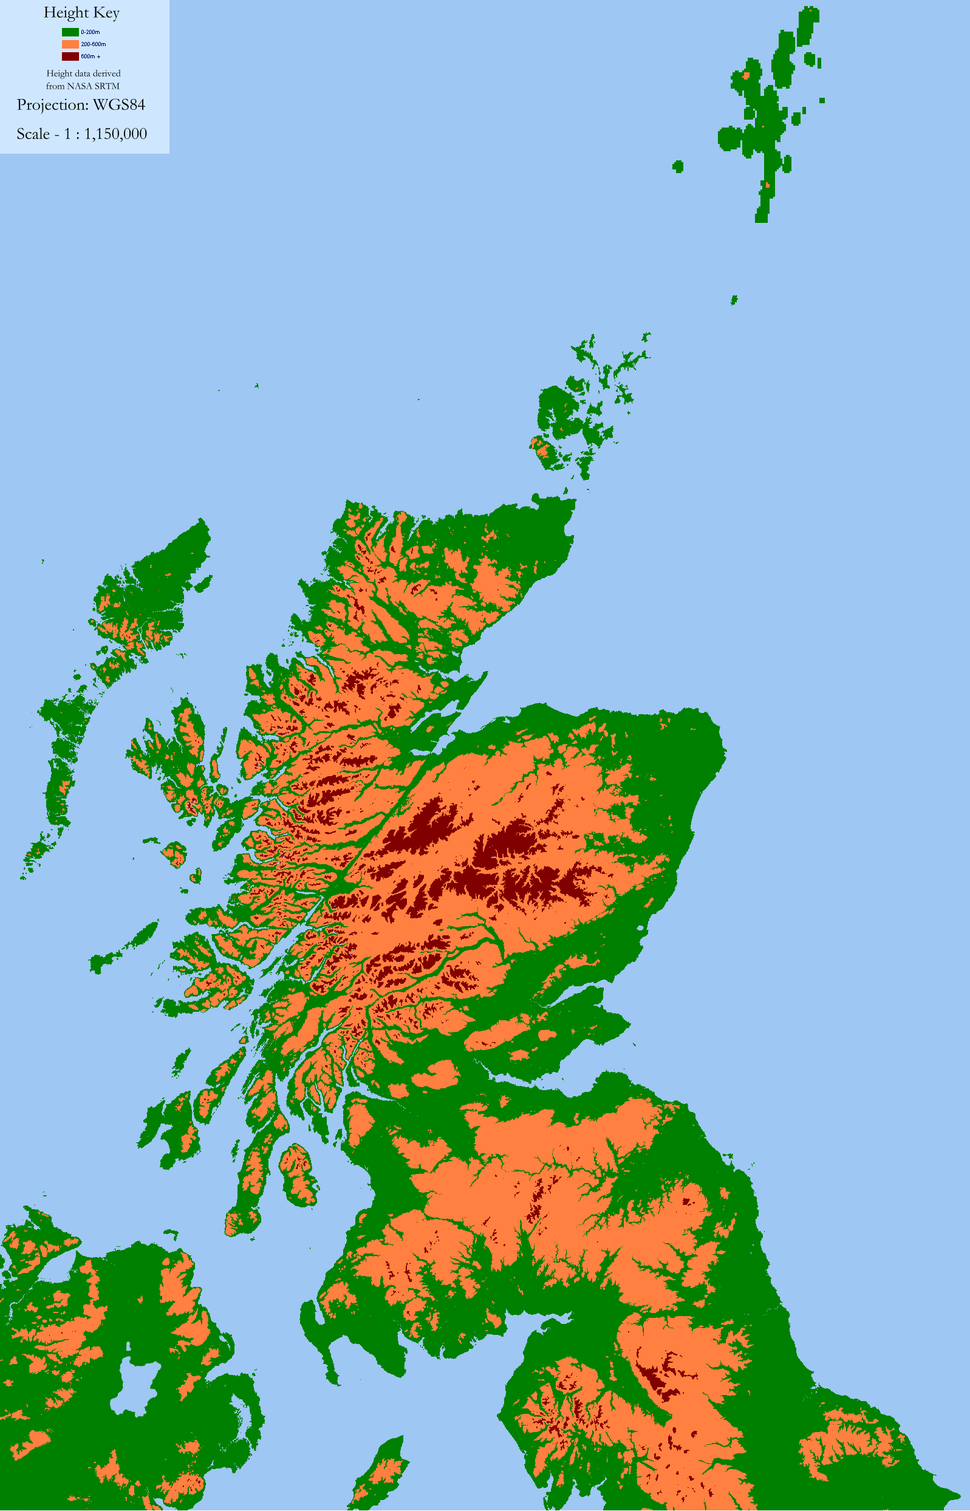 Scotland Land Use by height